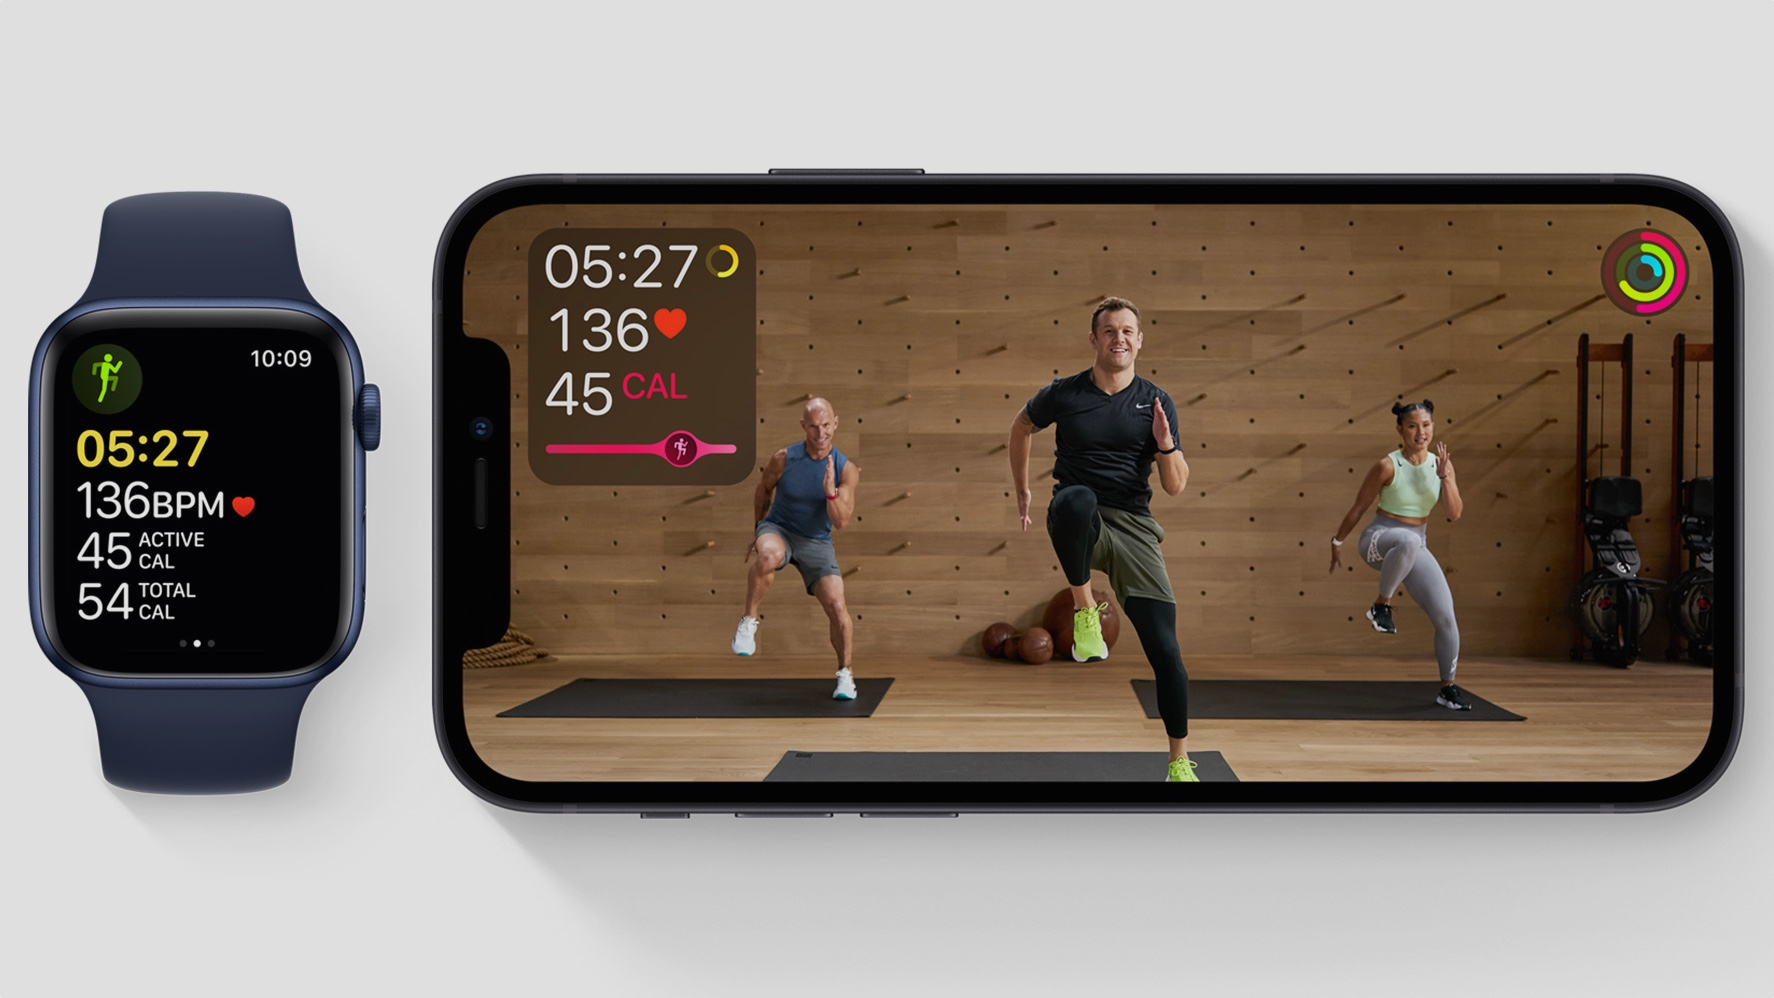 Apple's Fitness+ will launch on 14 December